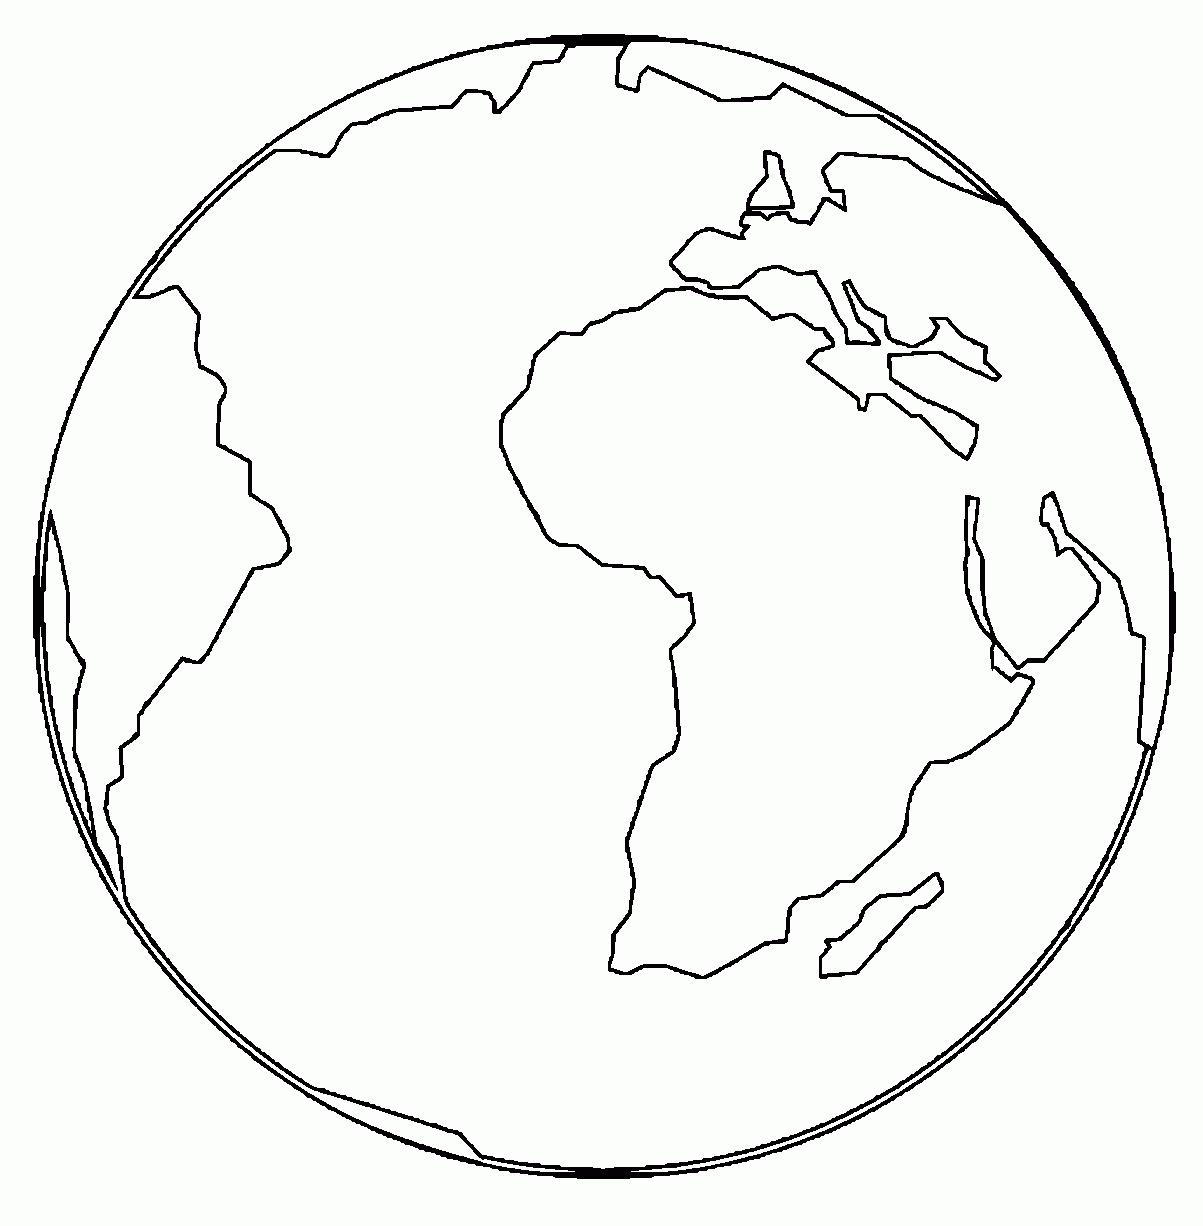 1203x1226 Simple Earth Coloring Pages Simple Colorings